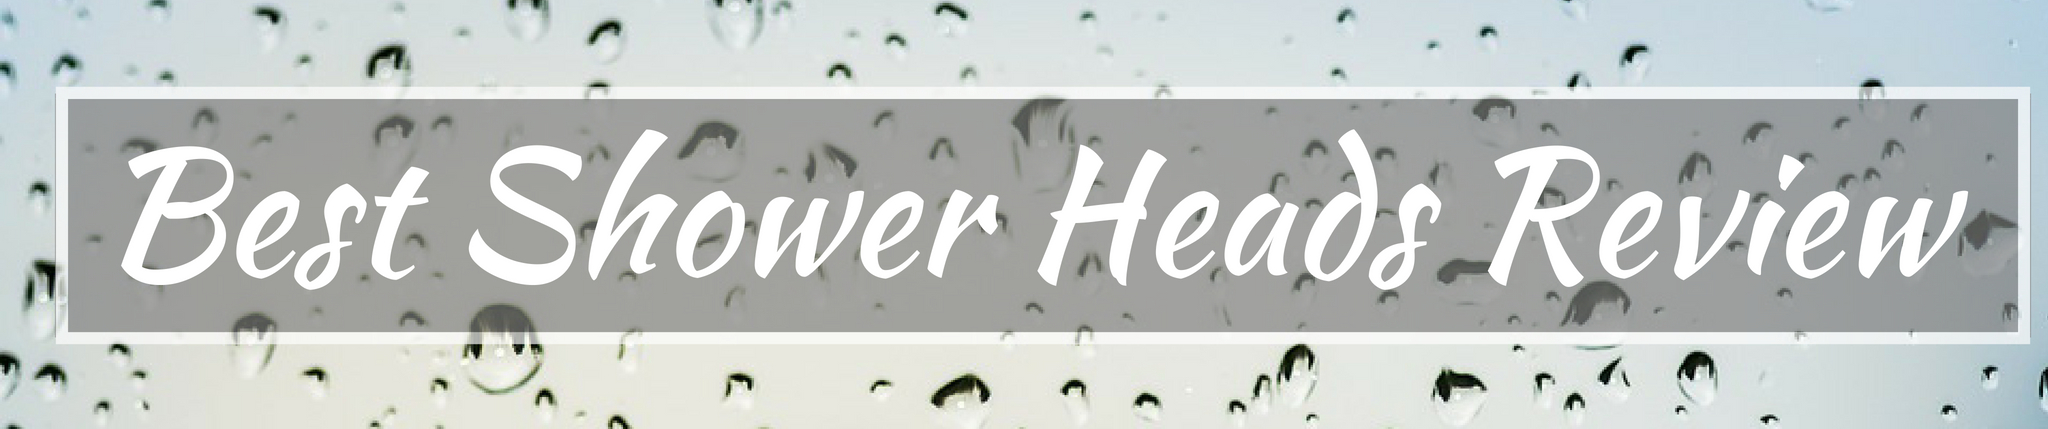 Best ShowerHeads Review logo